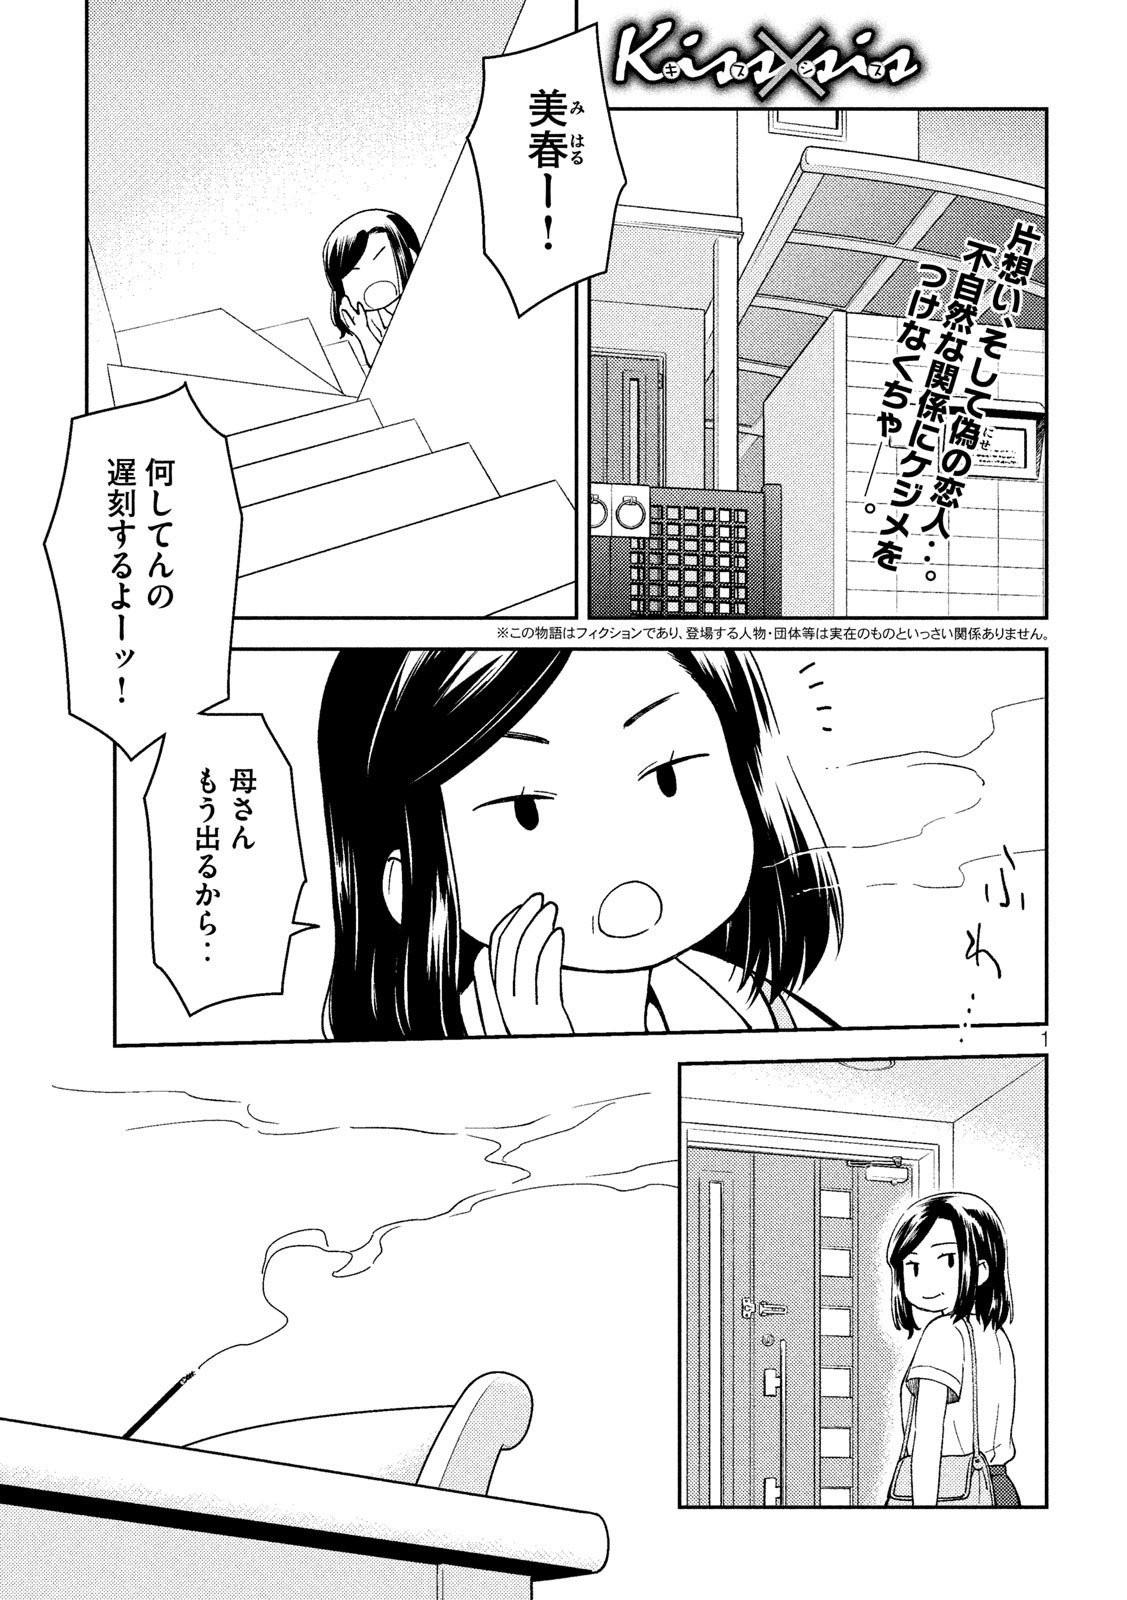 Kiss x Sis - Chapter 138 - Page 1